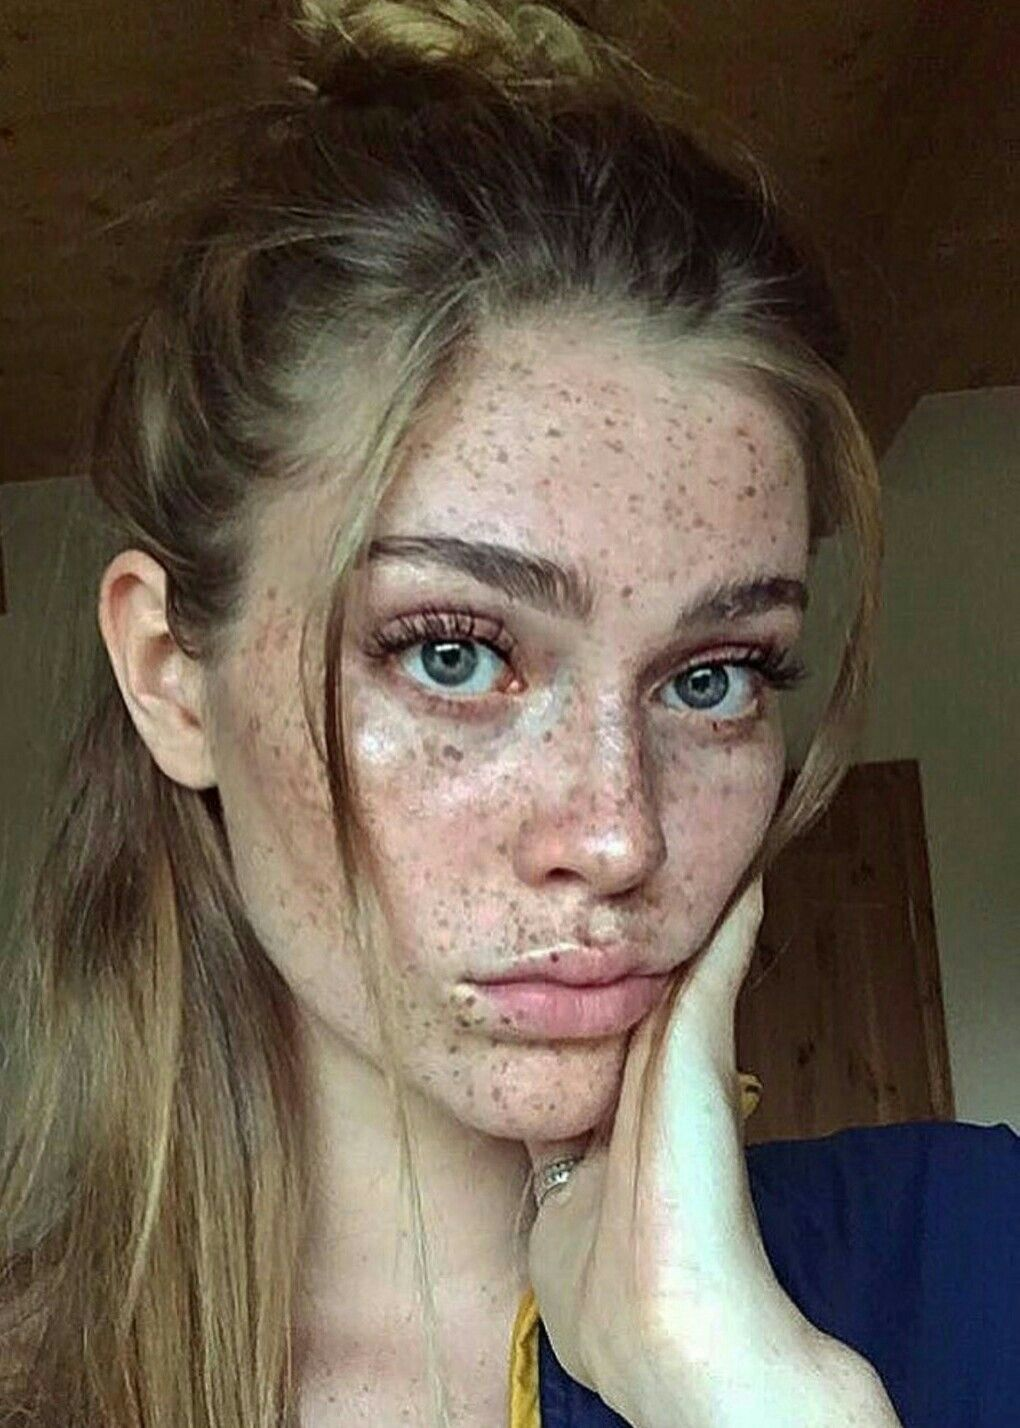 Pin by Shannae McIntosh on •Beauty• Beautiful freckles